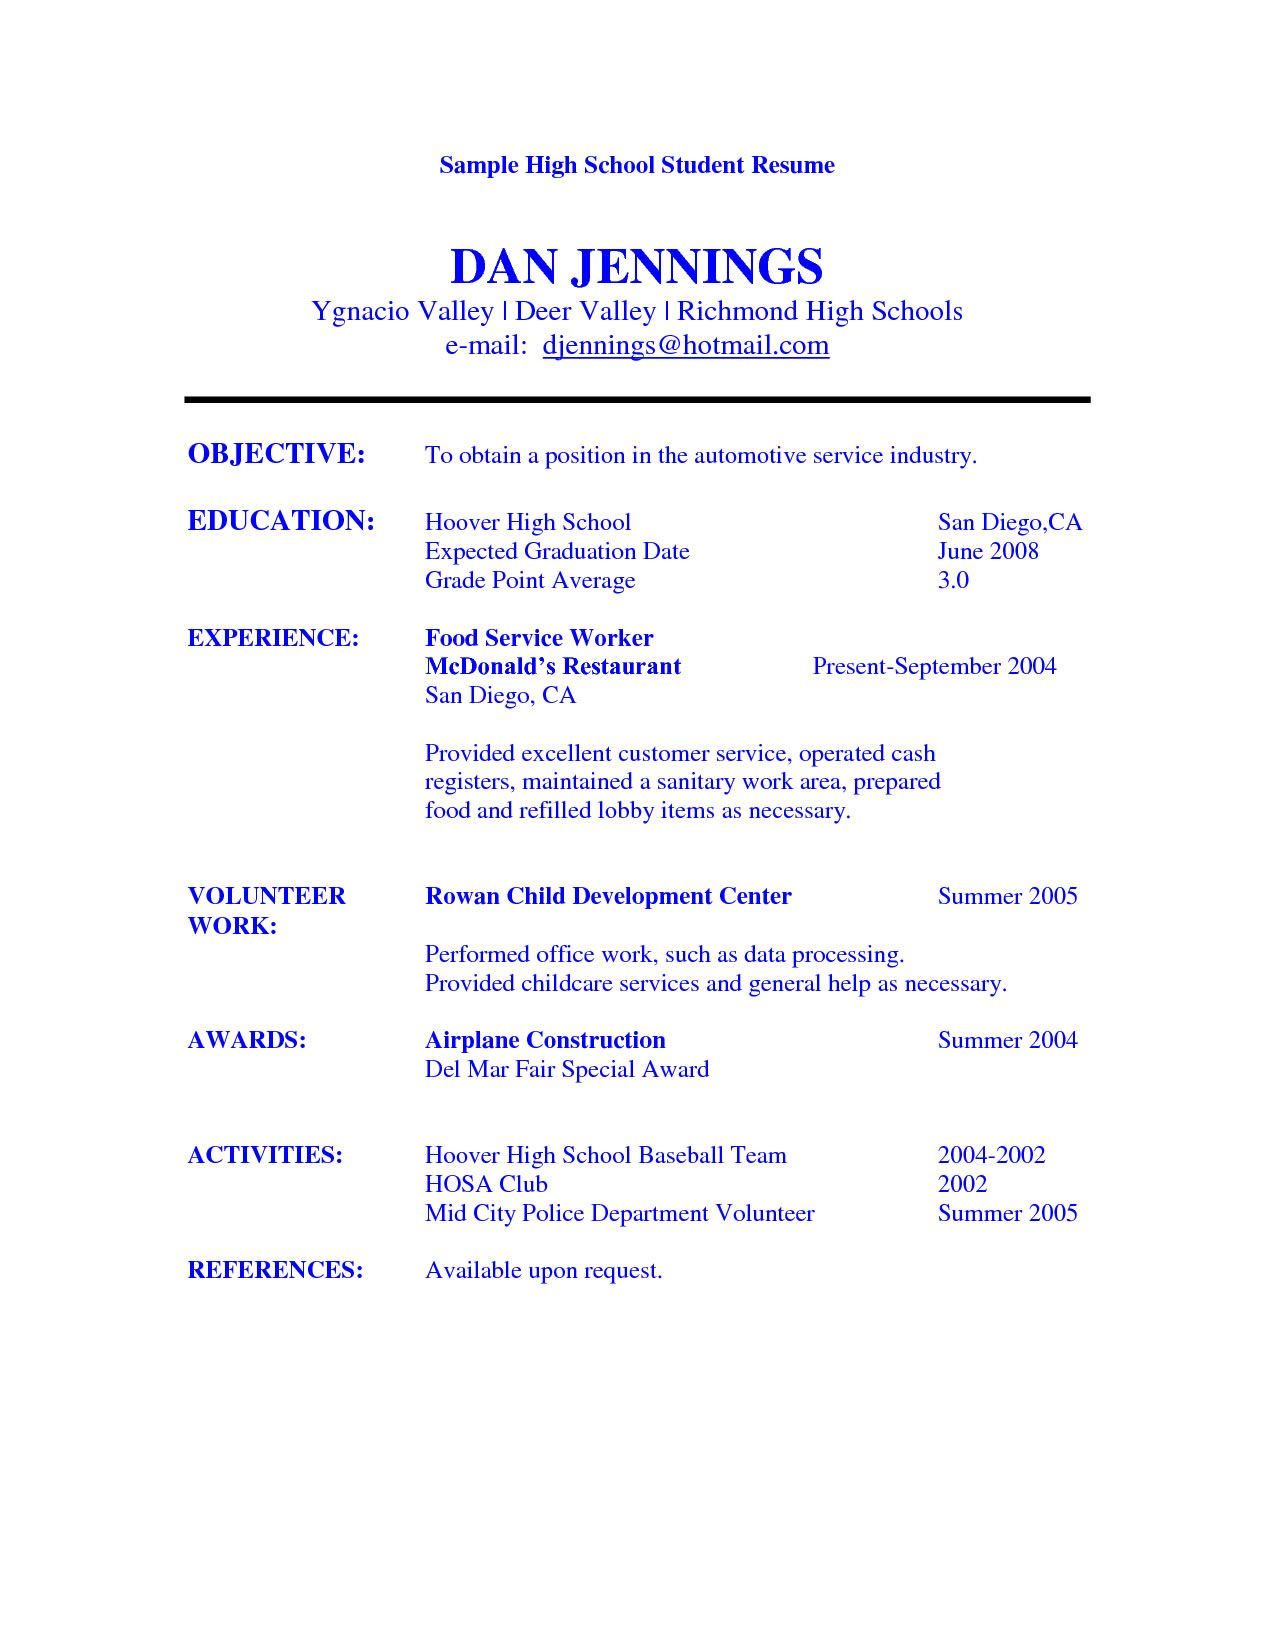 resume objective examples for high school graduate